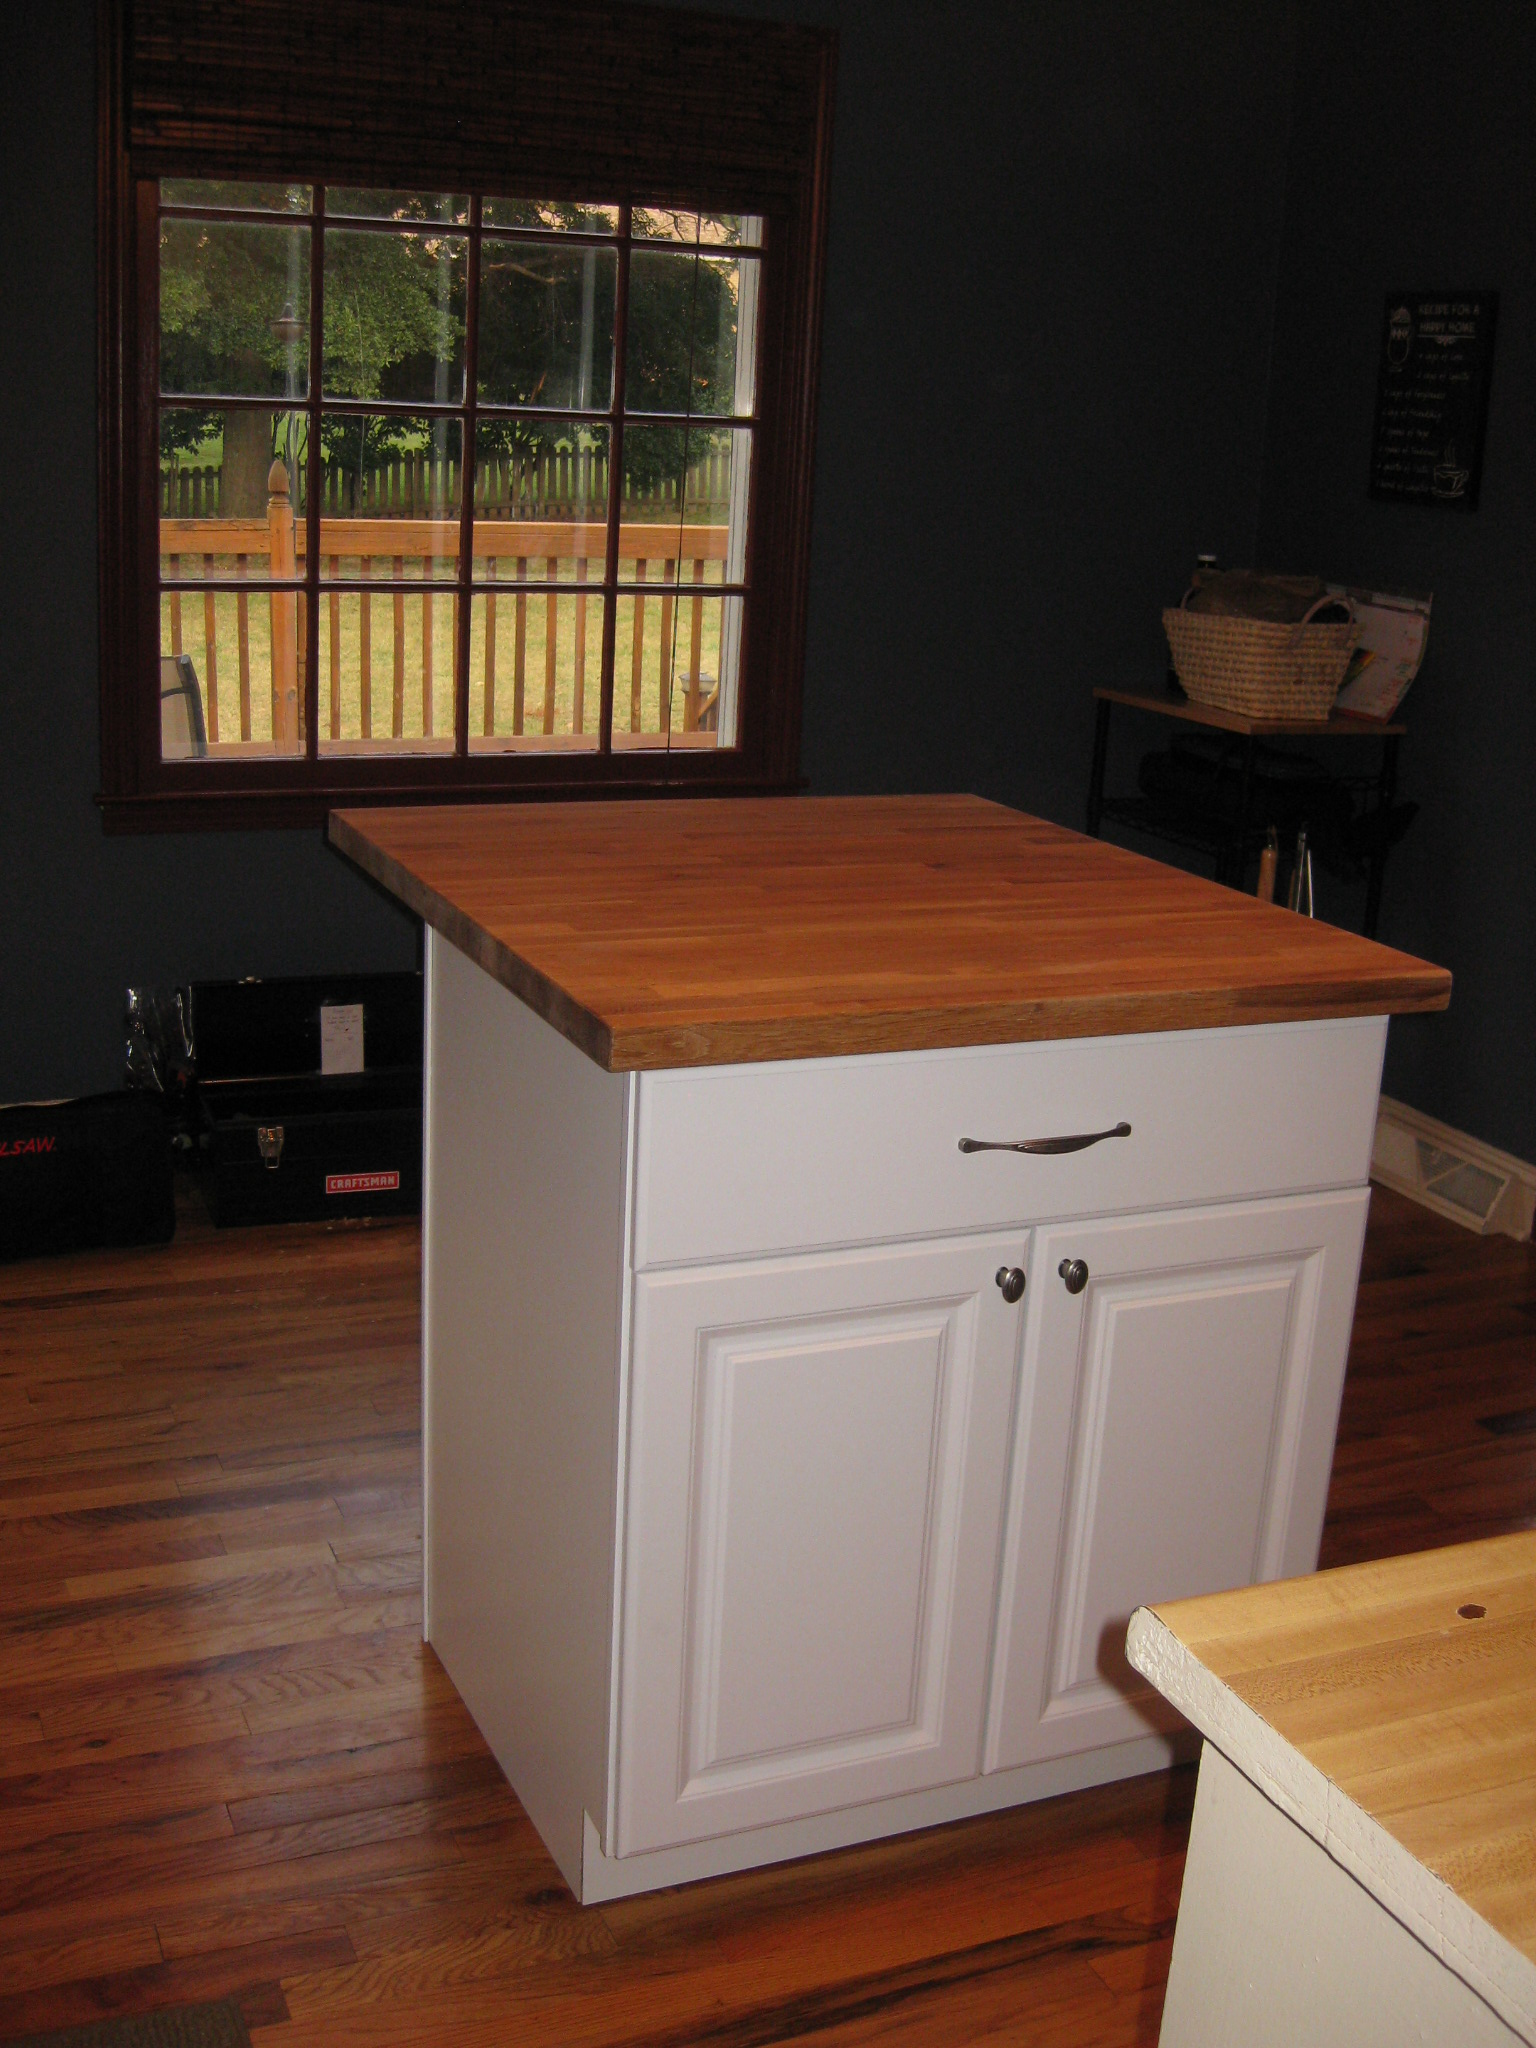 Kitchen Cabinets Made Into Island Diy Kitchen Island Tutorial From Pre Made Cabinets